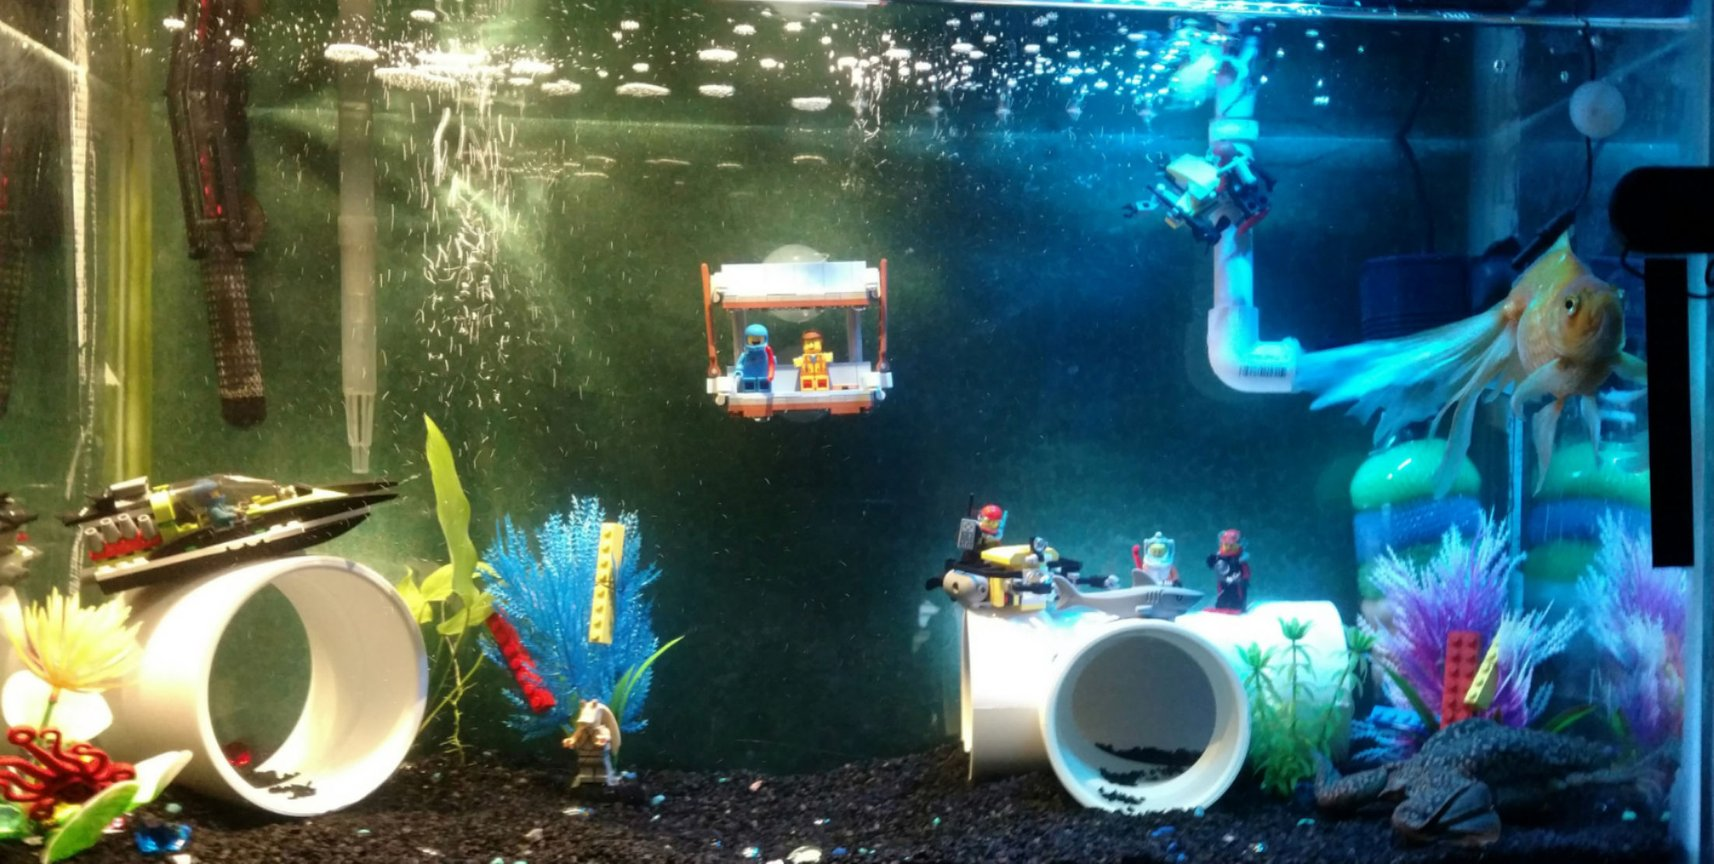 30 gallons freshwater fish tank (mostly fish and non-living decorations) - Lego City Aquarium.